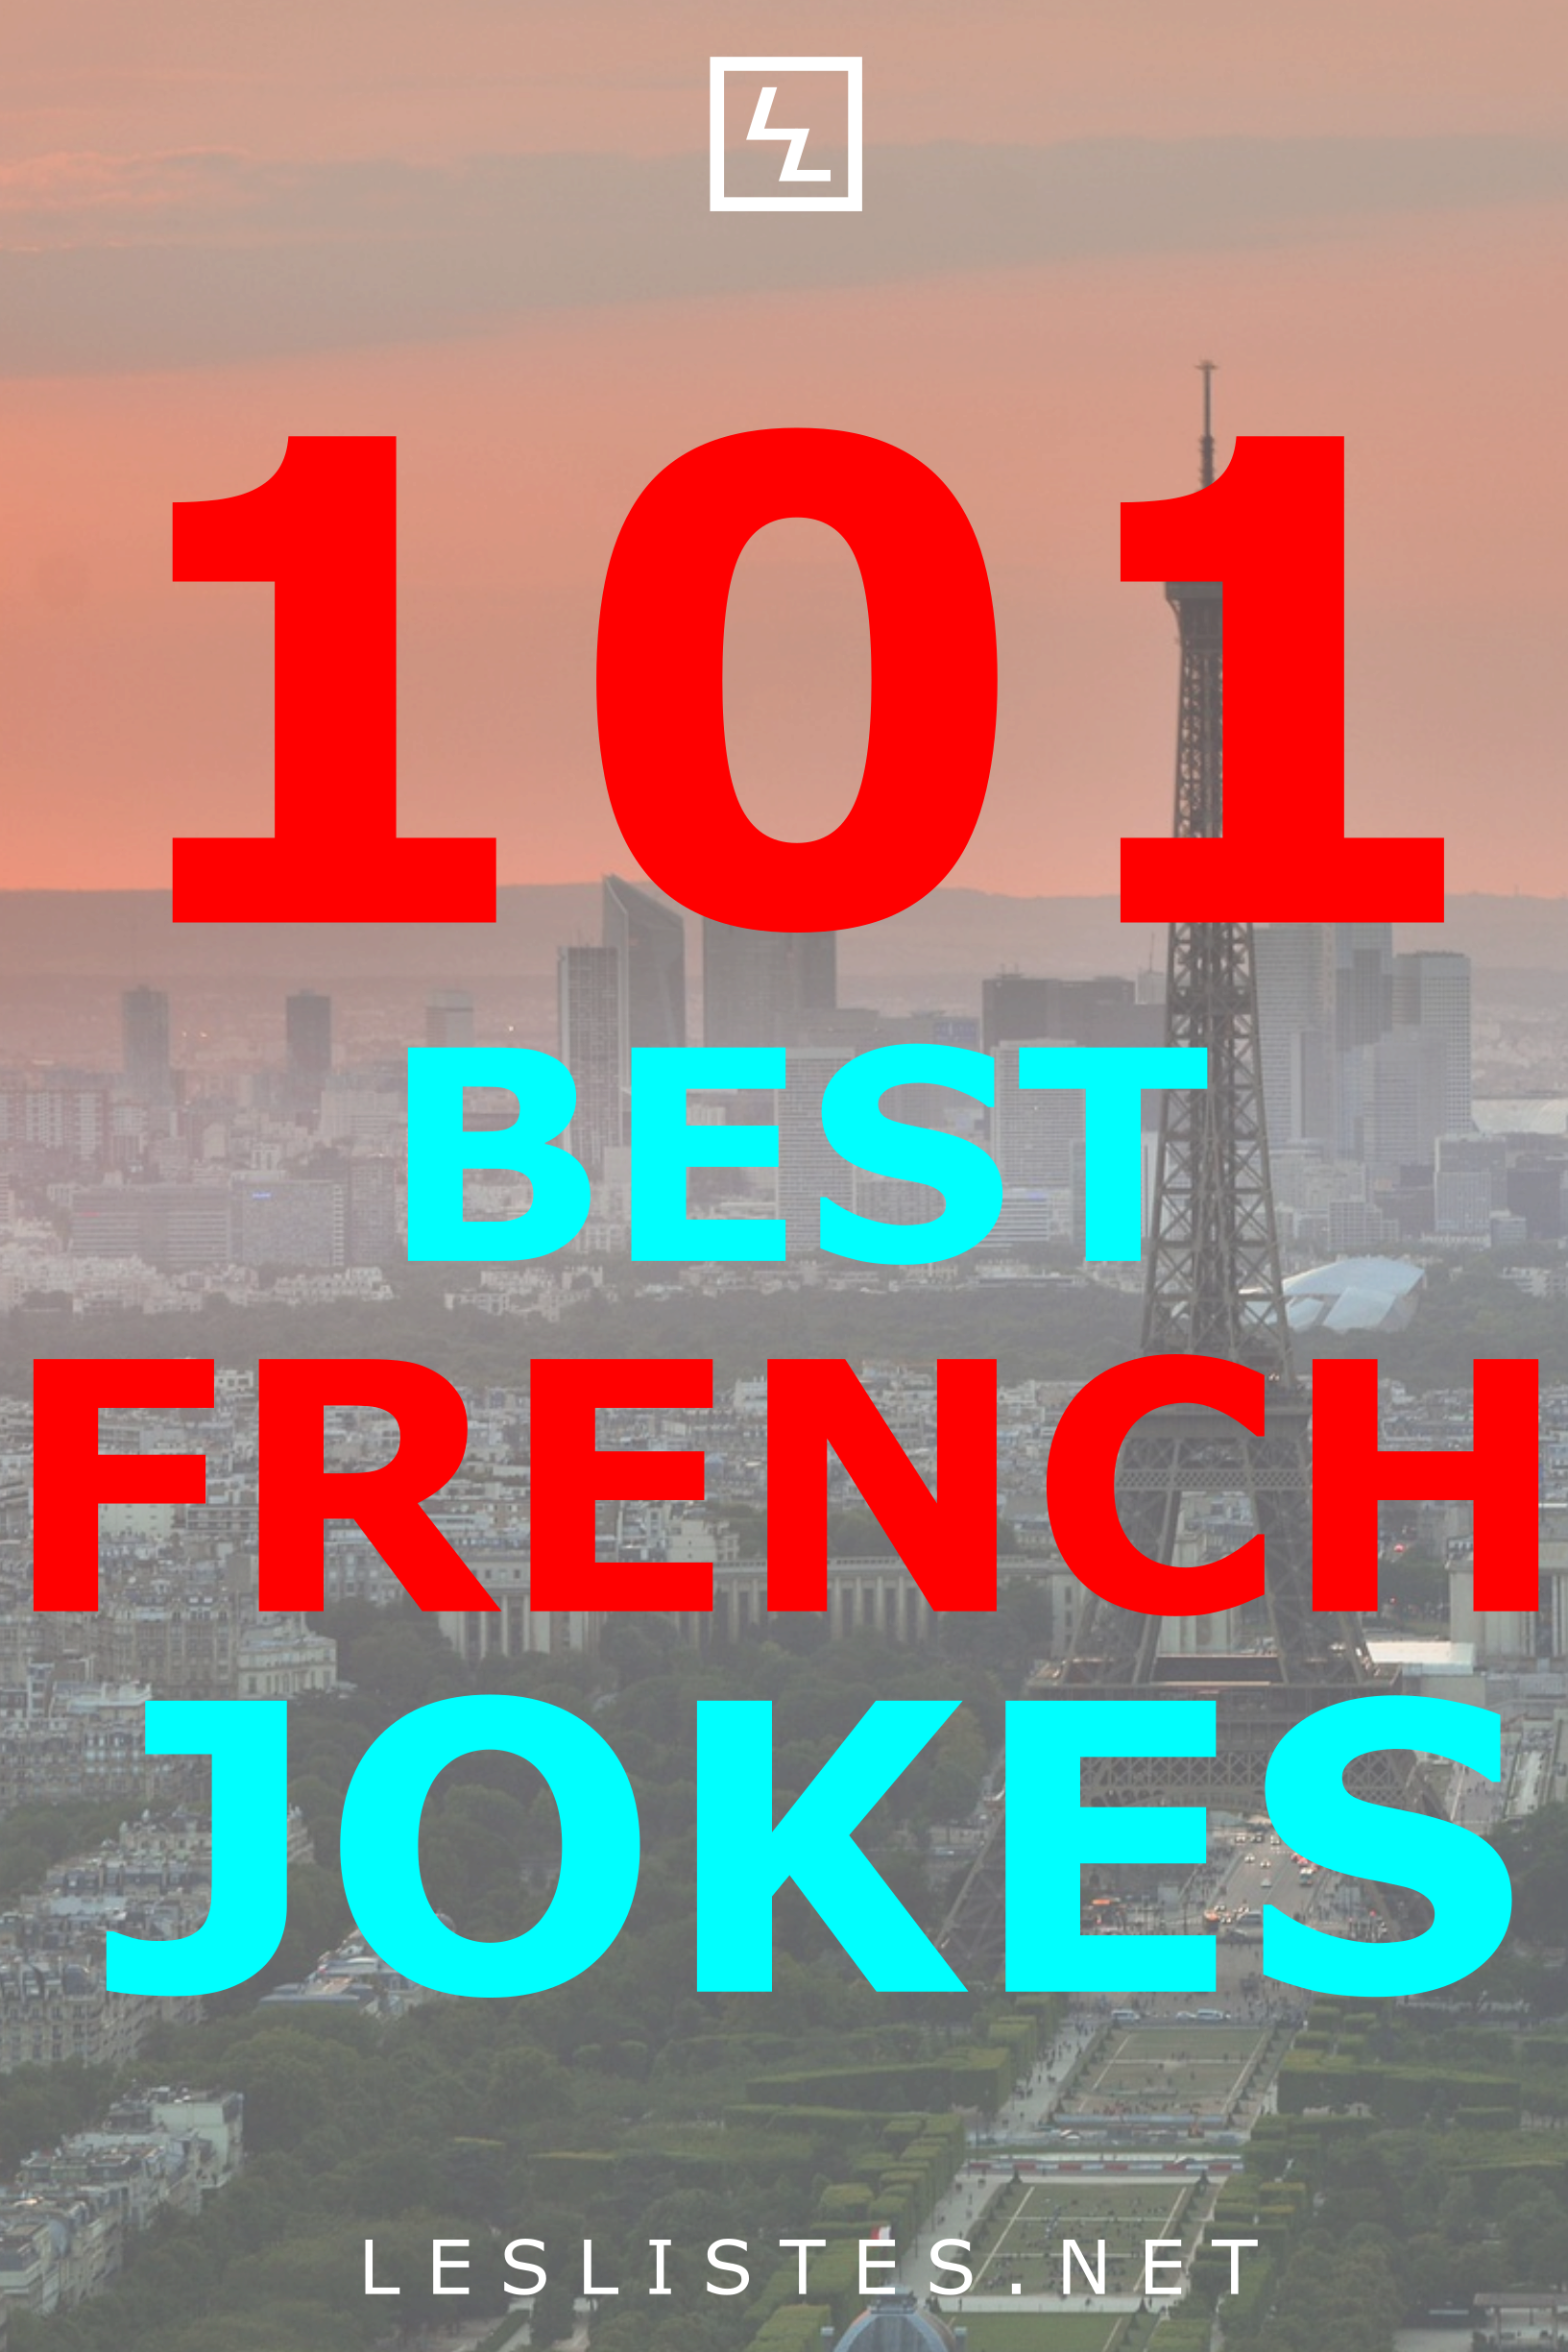 France Has A Long And Storied History Part Of That History Is A Lot Of Jokes About Them Check Out The Top 101 French Jokes French Jokes Funny Jokes Humor